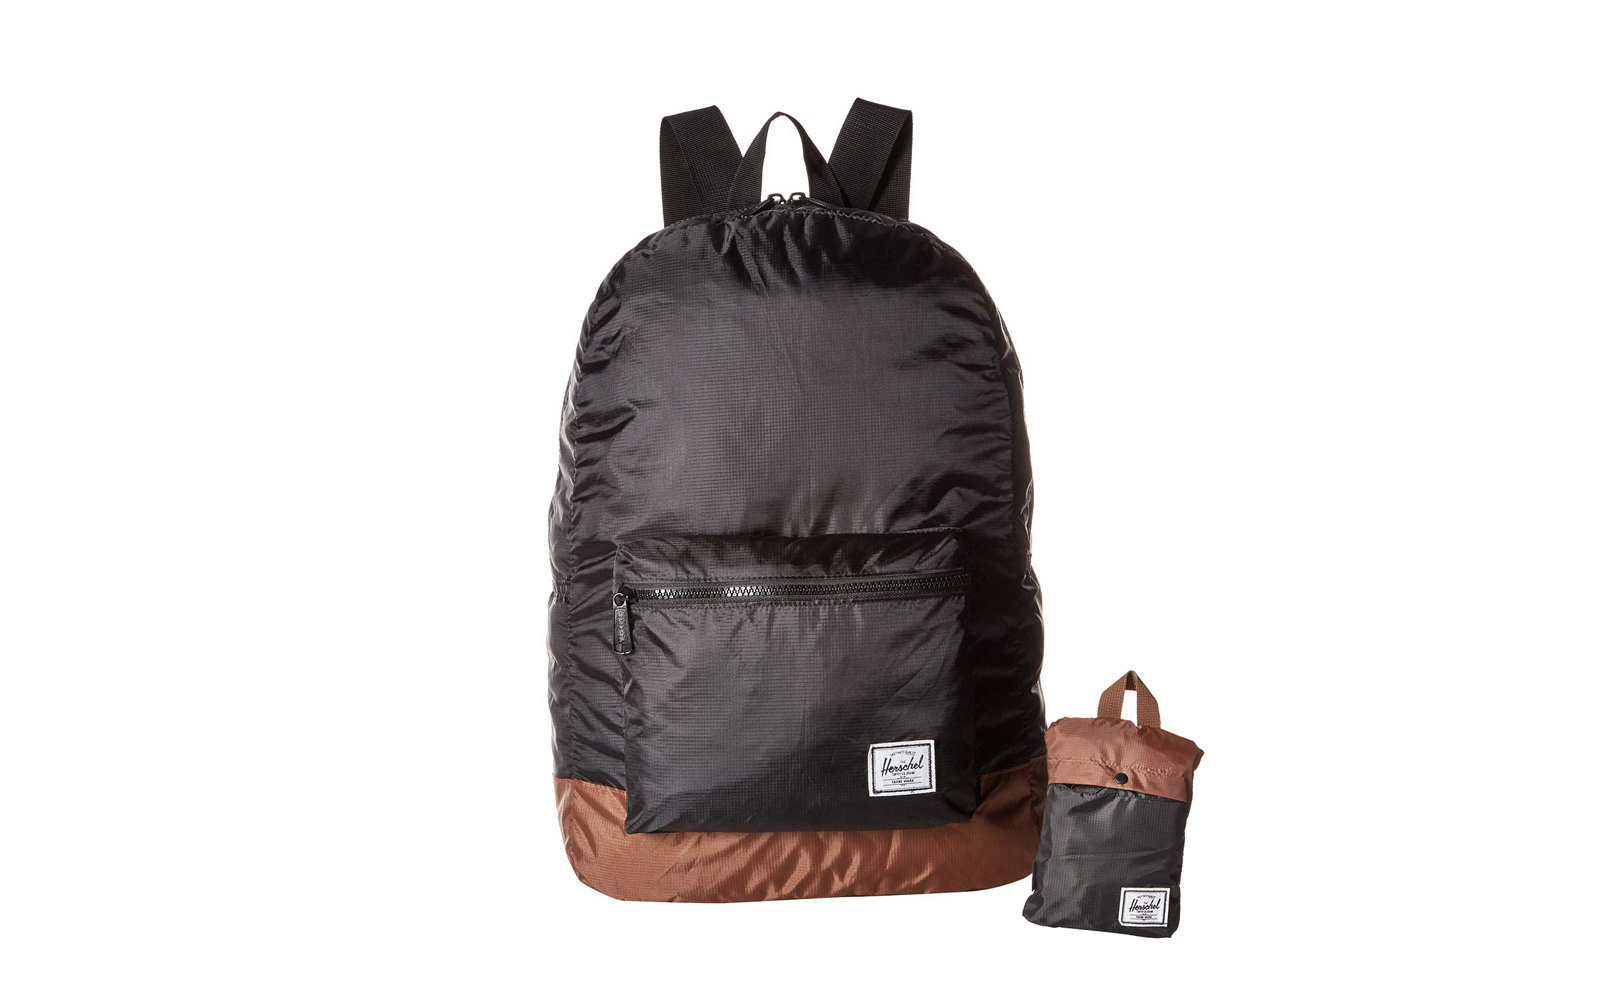 3785a2e4ddaa The 11 Best Packable Backpacks for Travelers